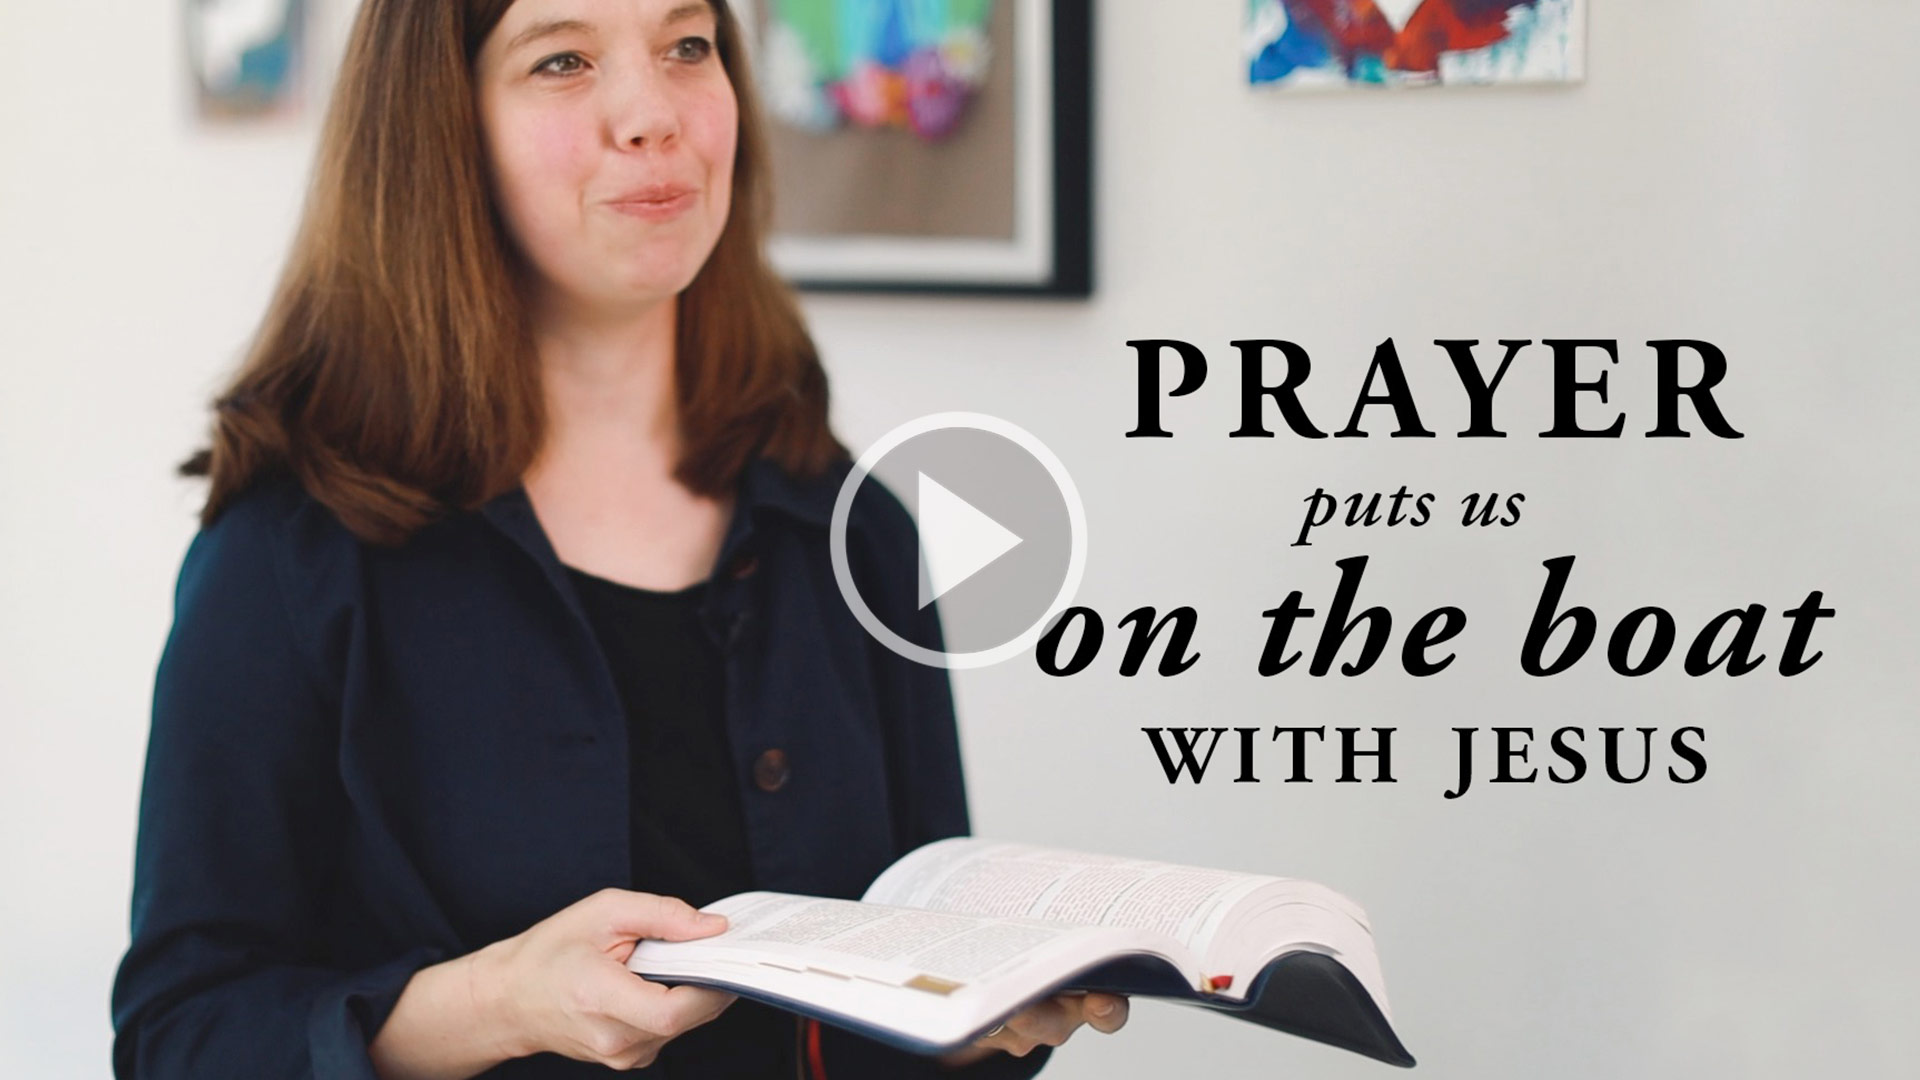 Prayer on the boat with jesus - Pray a Minute